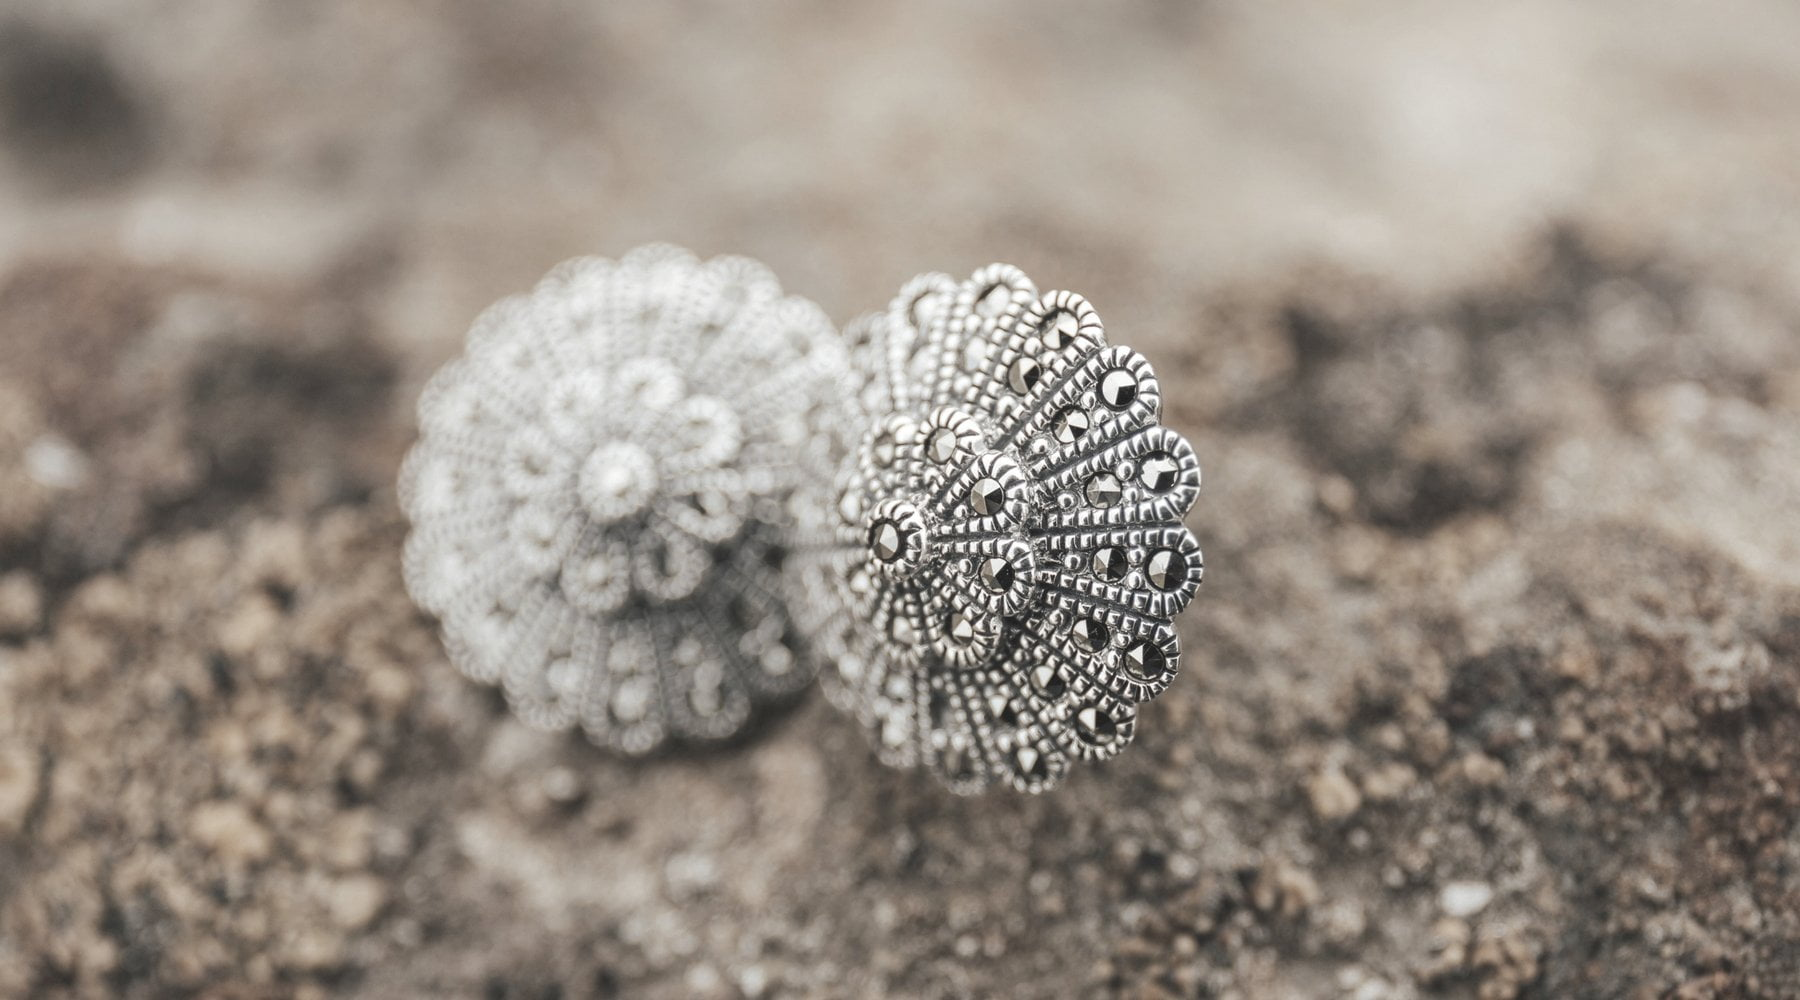 Vintage Marcasite Jewelry: Marcasite Throughout the Ages